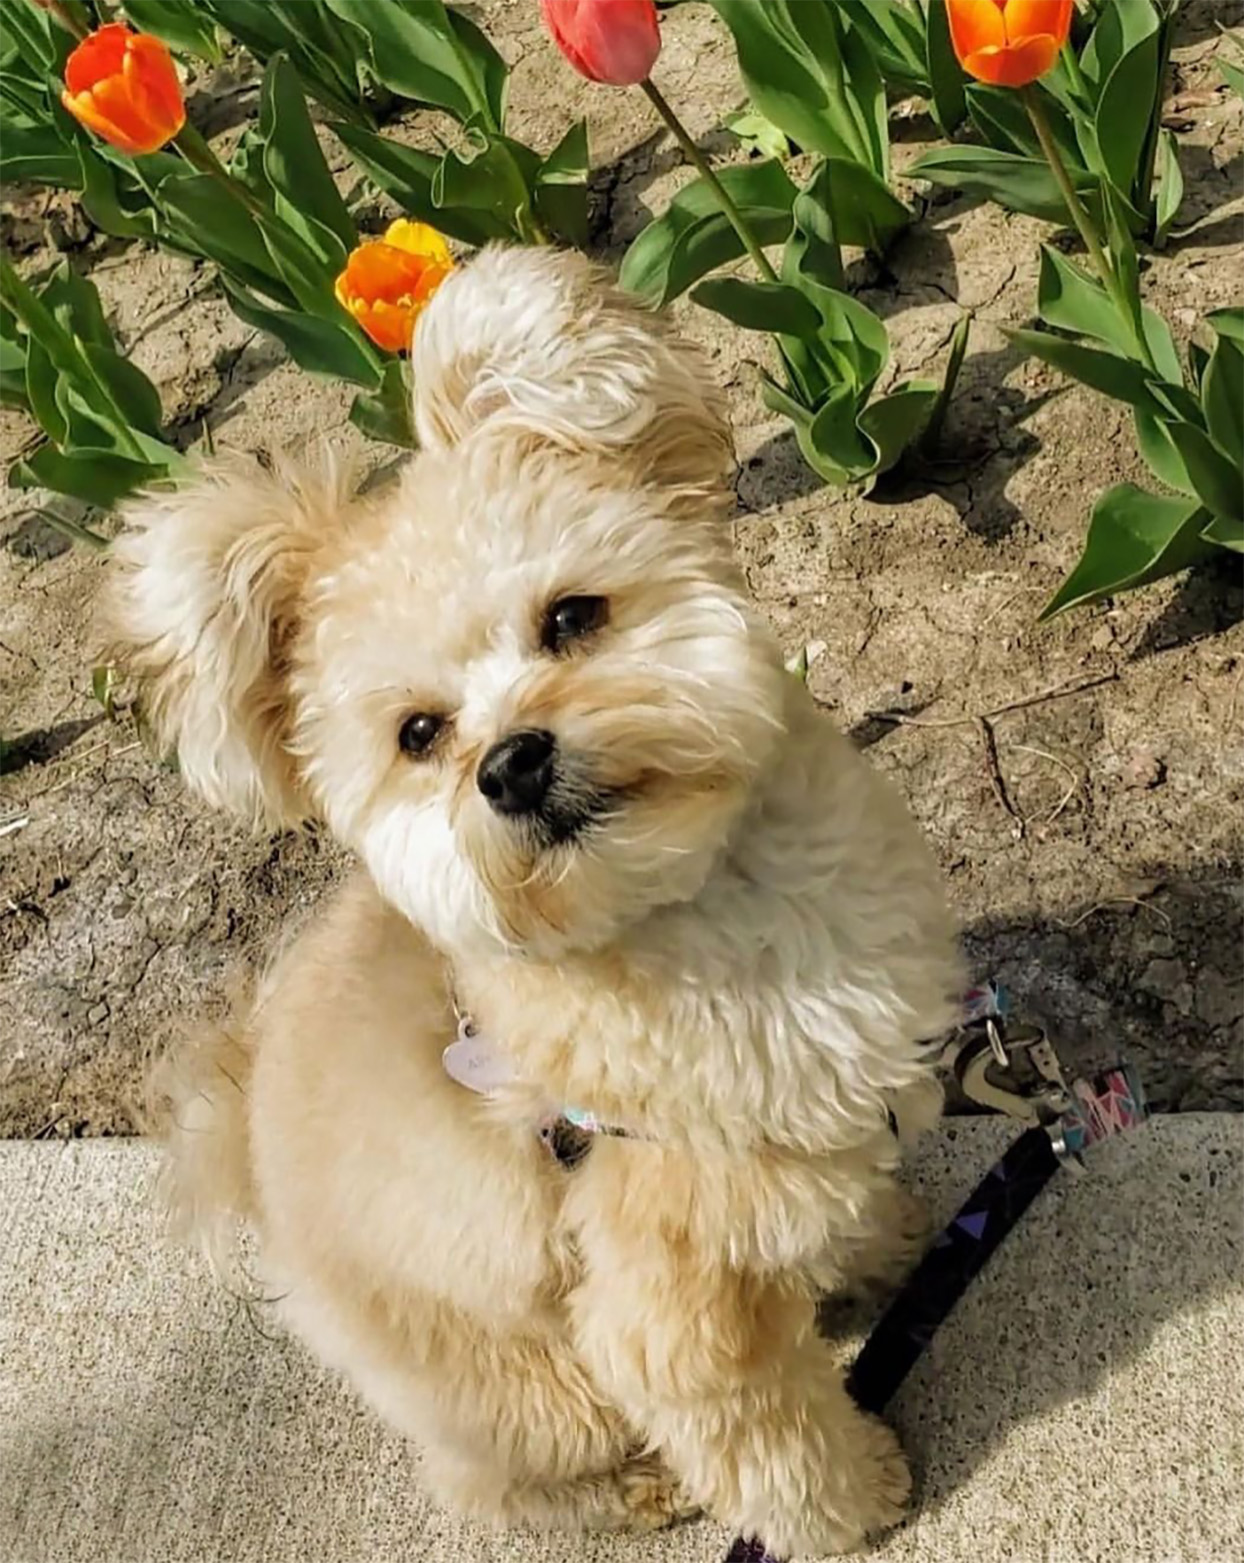 Pomapoo standing in front of tulips